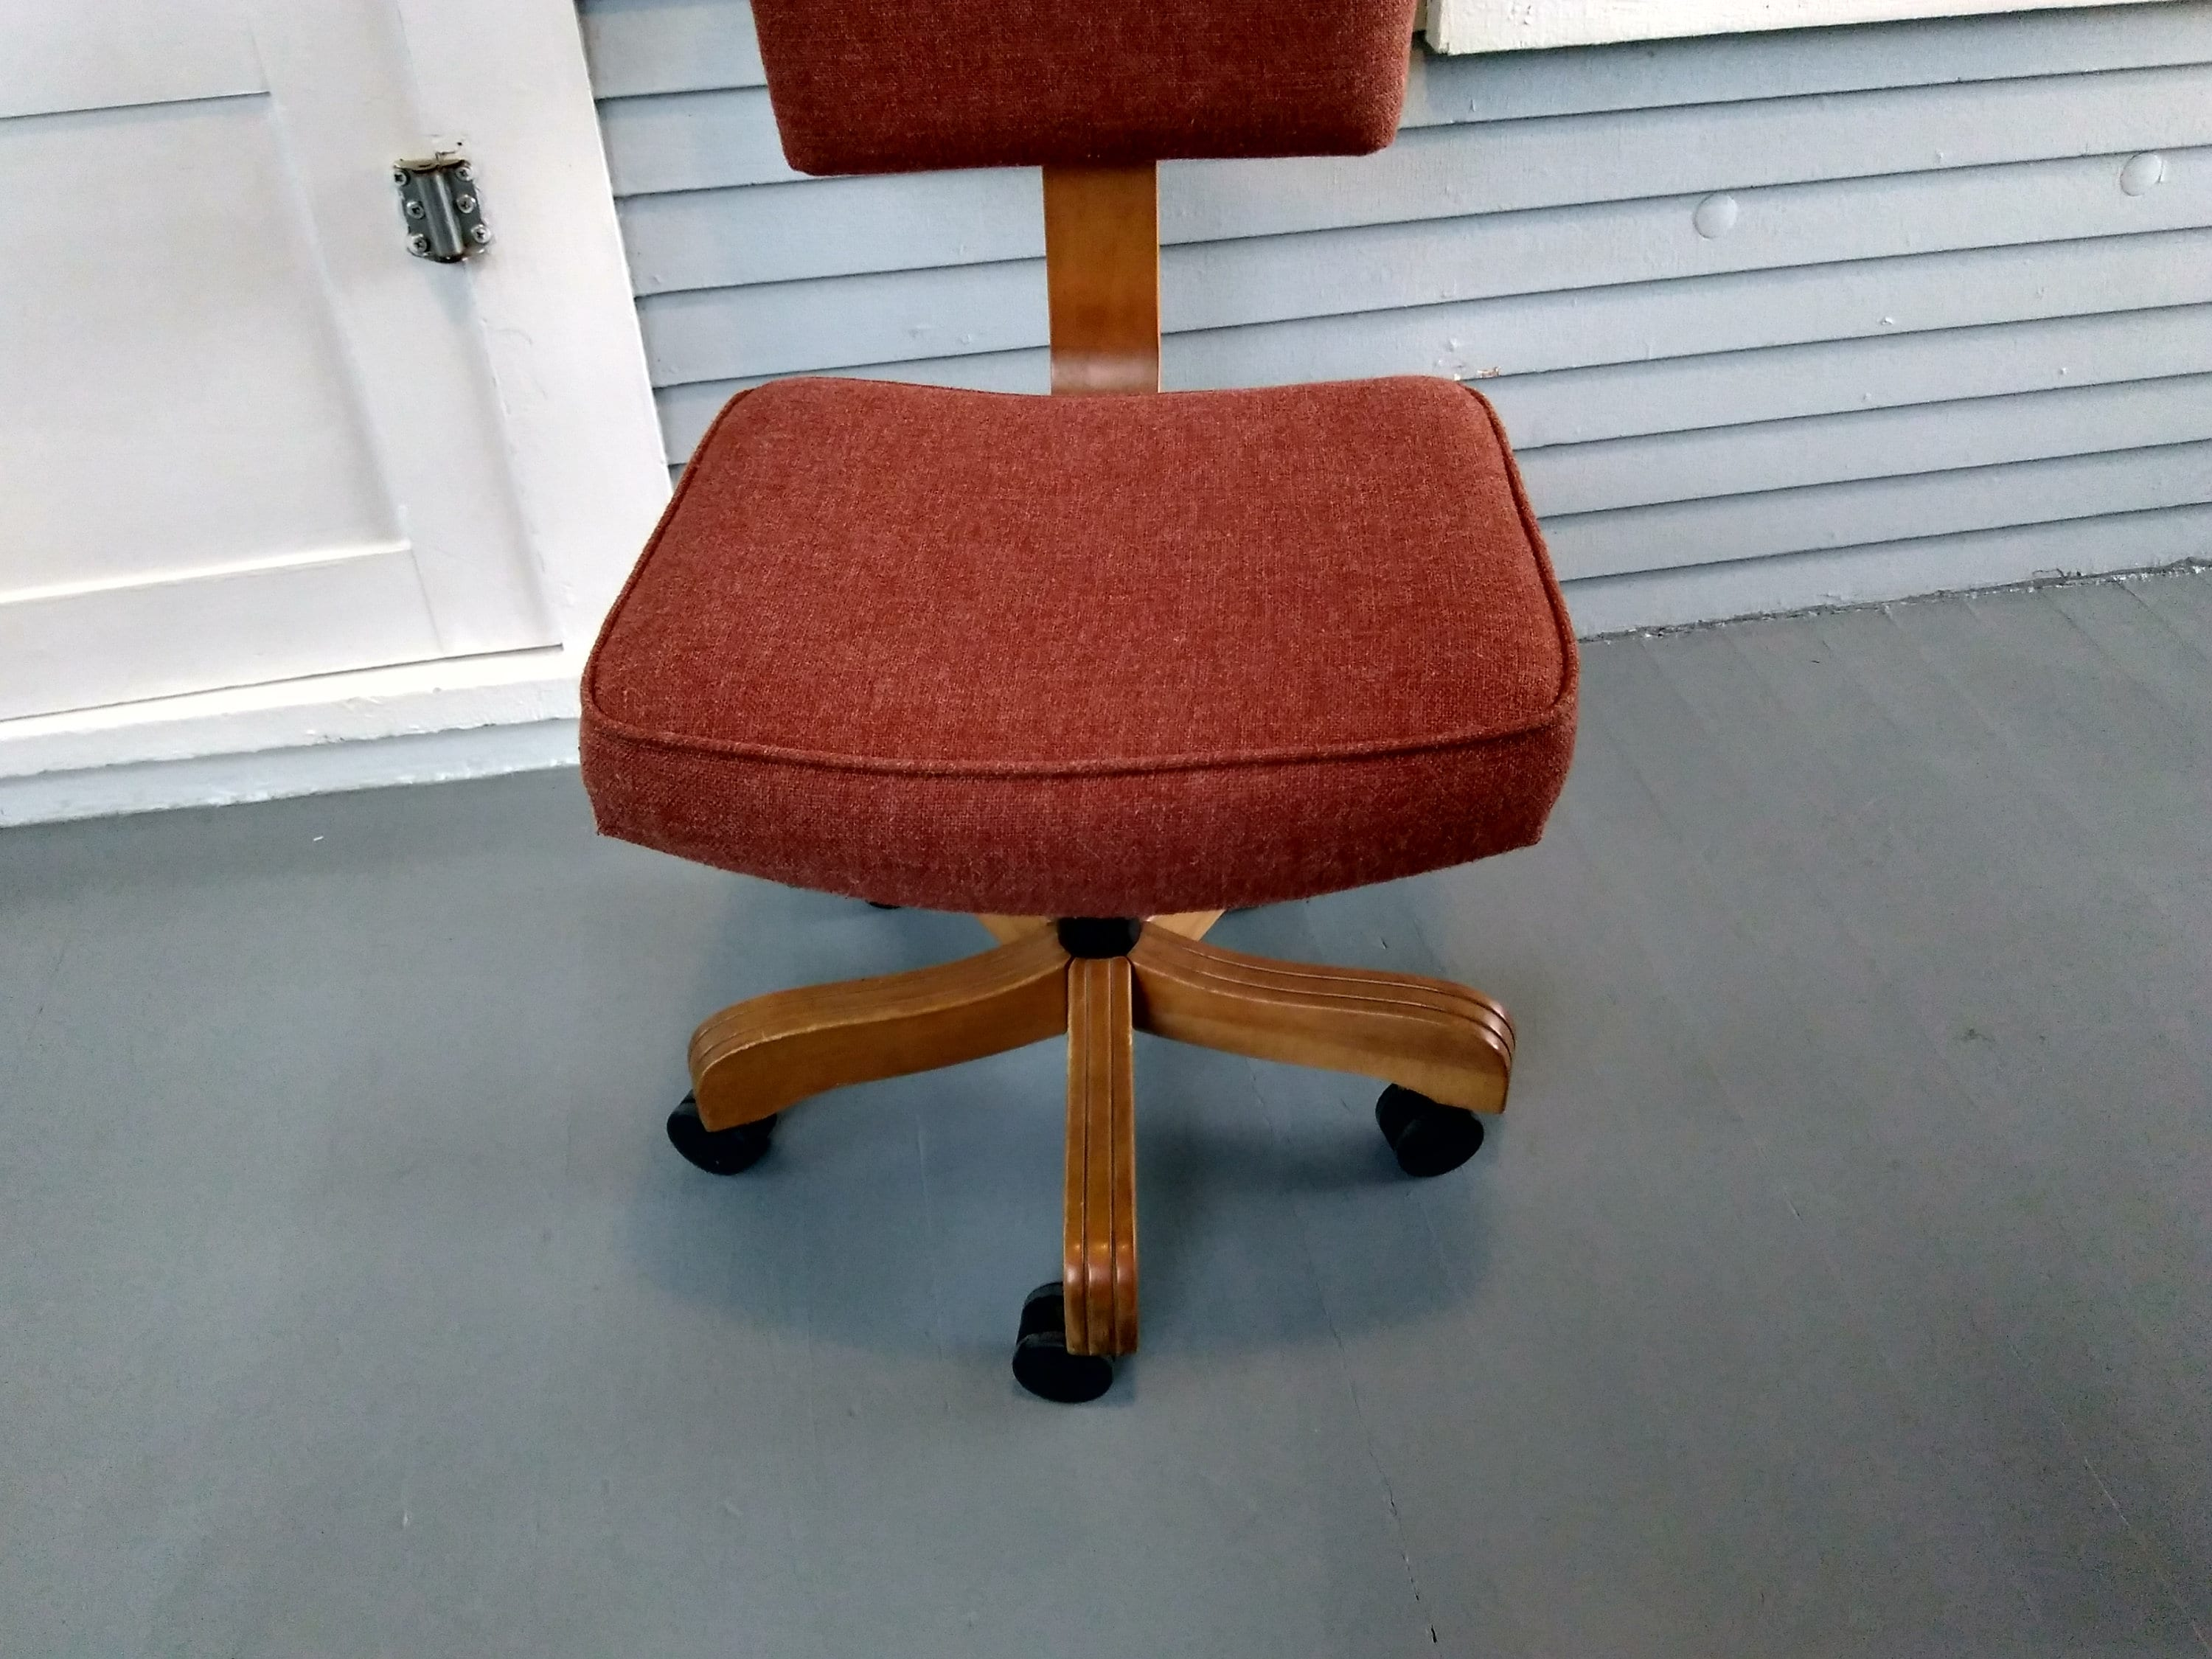 Terrific Vintage Rolling Desk Chair Midcentury Modern Industrial Spiritservingveterans Wood Chair Design Ideas Spiritservingveteransorg